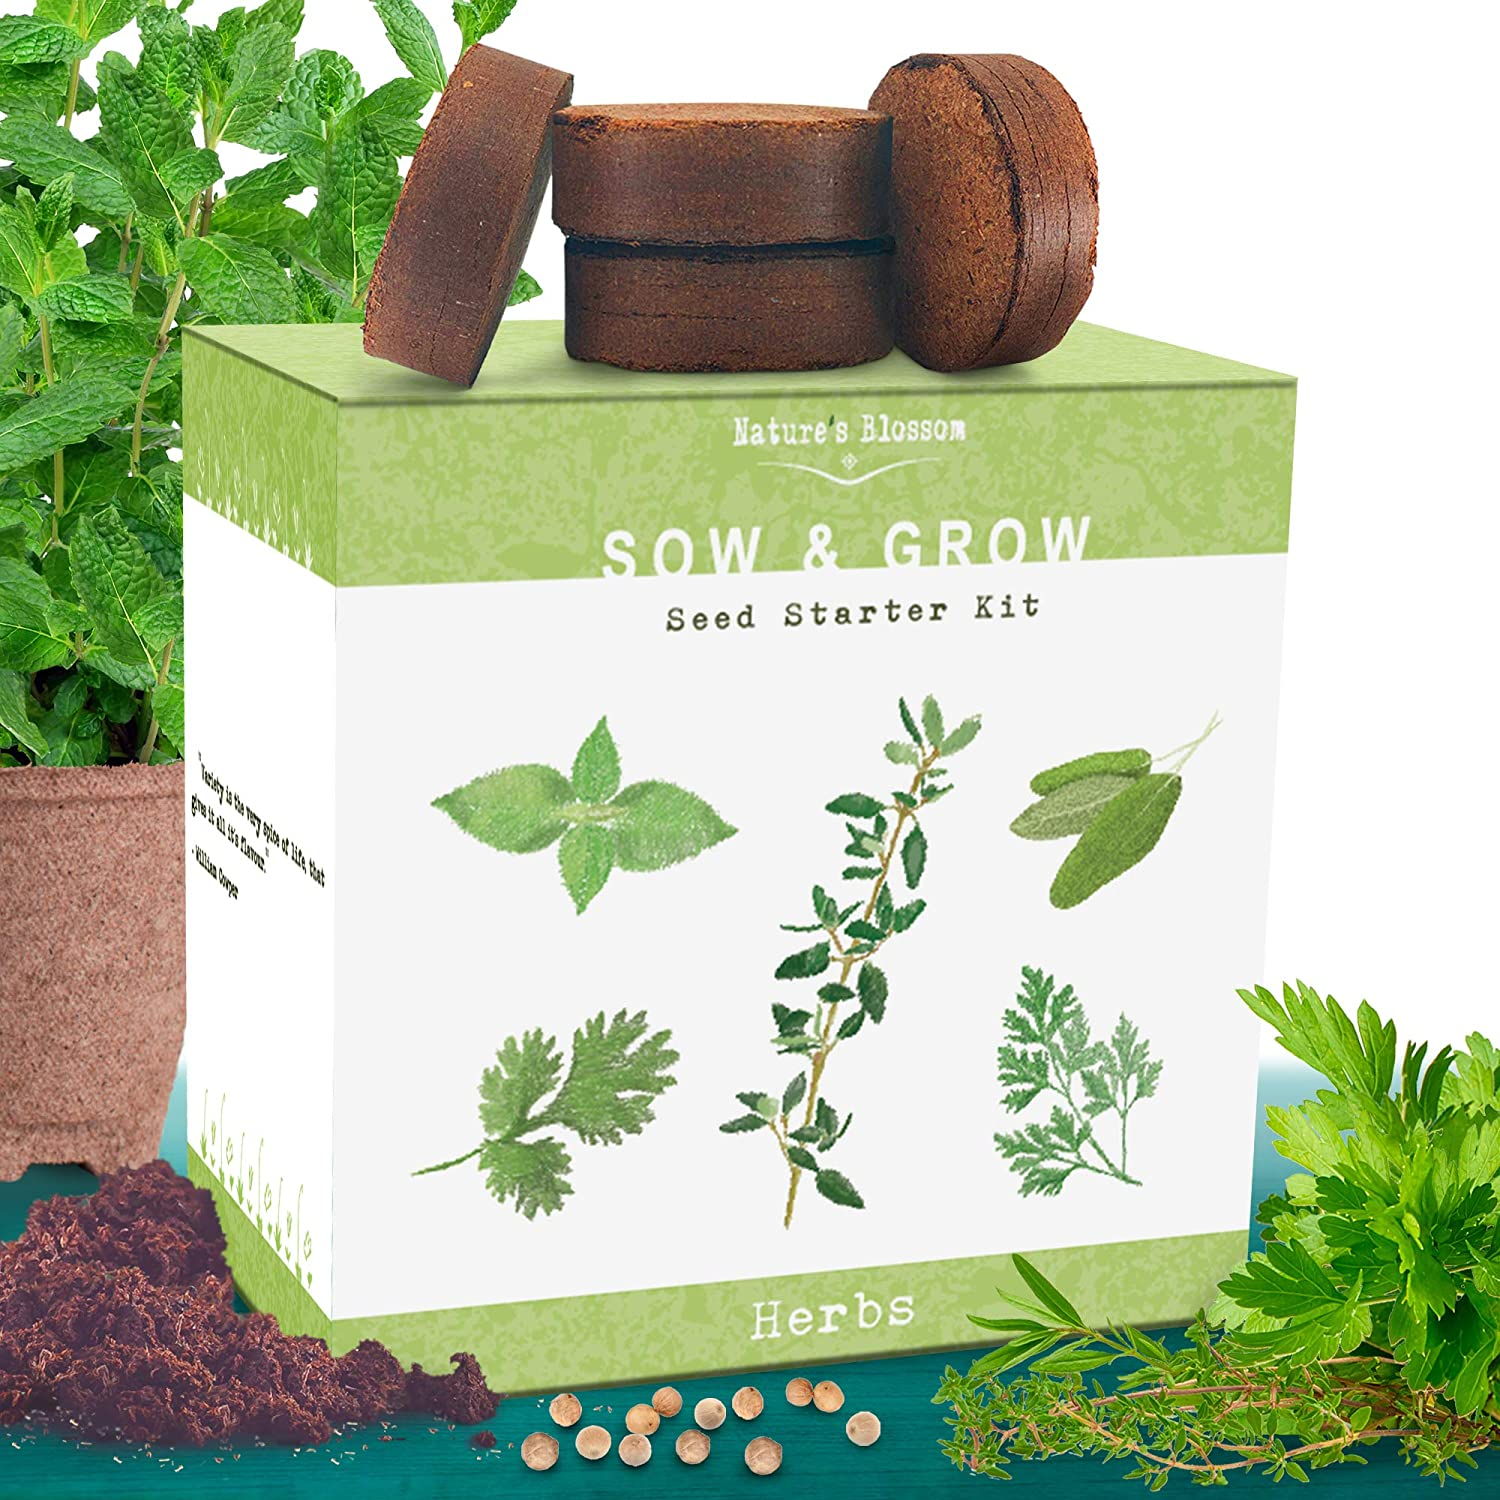 Nature s Blossom Herb Garden Kit. 5 Herbs To Grow From Seed Basil, Cilantro, Sage, Parsley and Thyme Seeds, Ready For Planting. Beginner Gardeners Starter Set For Growing Indoor Plants.